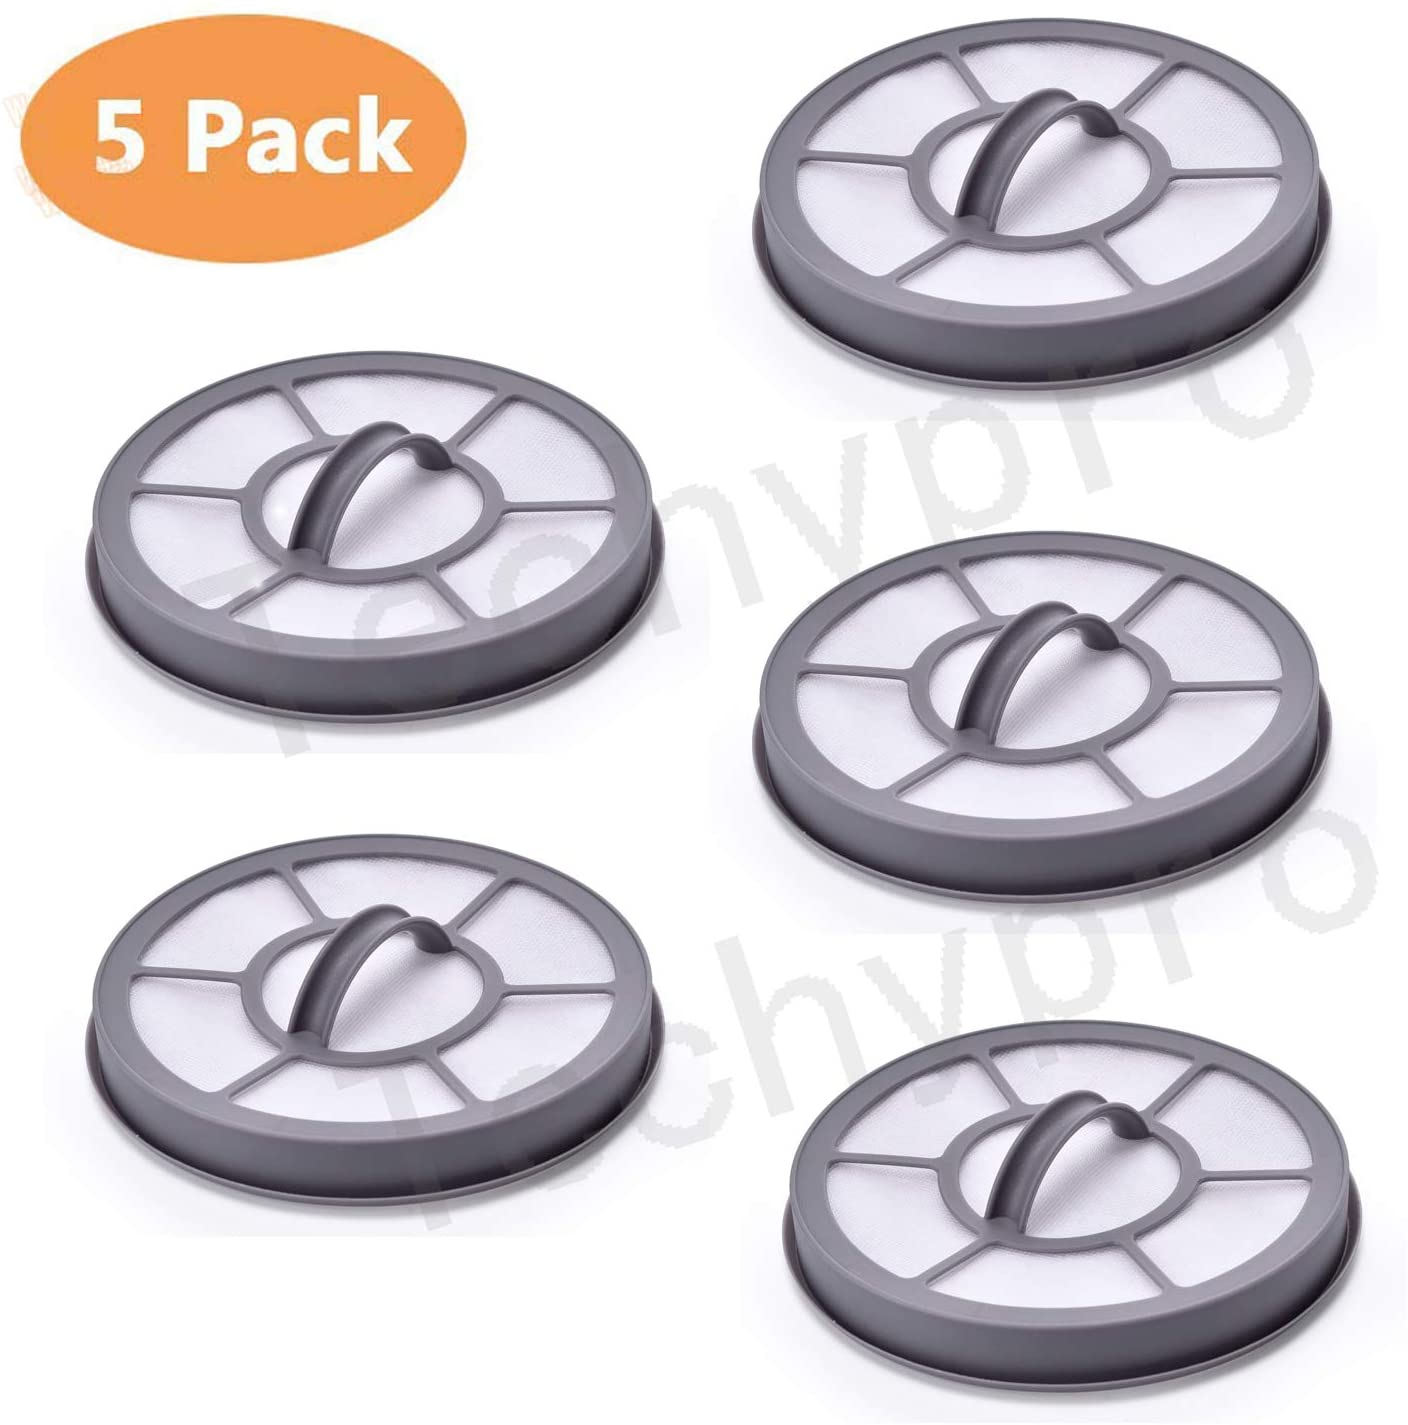 Techypro 5 pack Replacement Vacuum Filter for Eureka Exhaust Airspeed EF-7 Models AS3001A, AS3008A, AS3011A, AS3030A.Replaces Part 091541